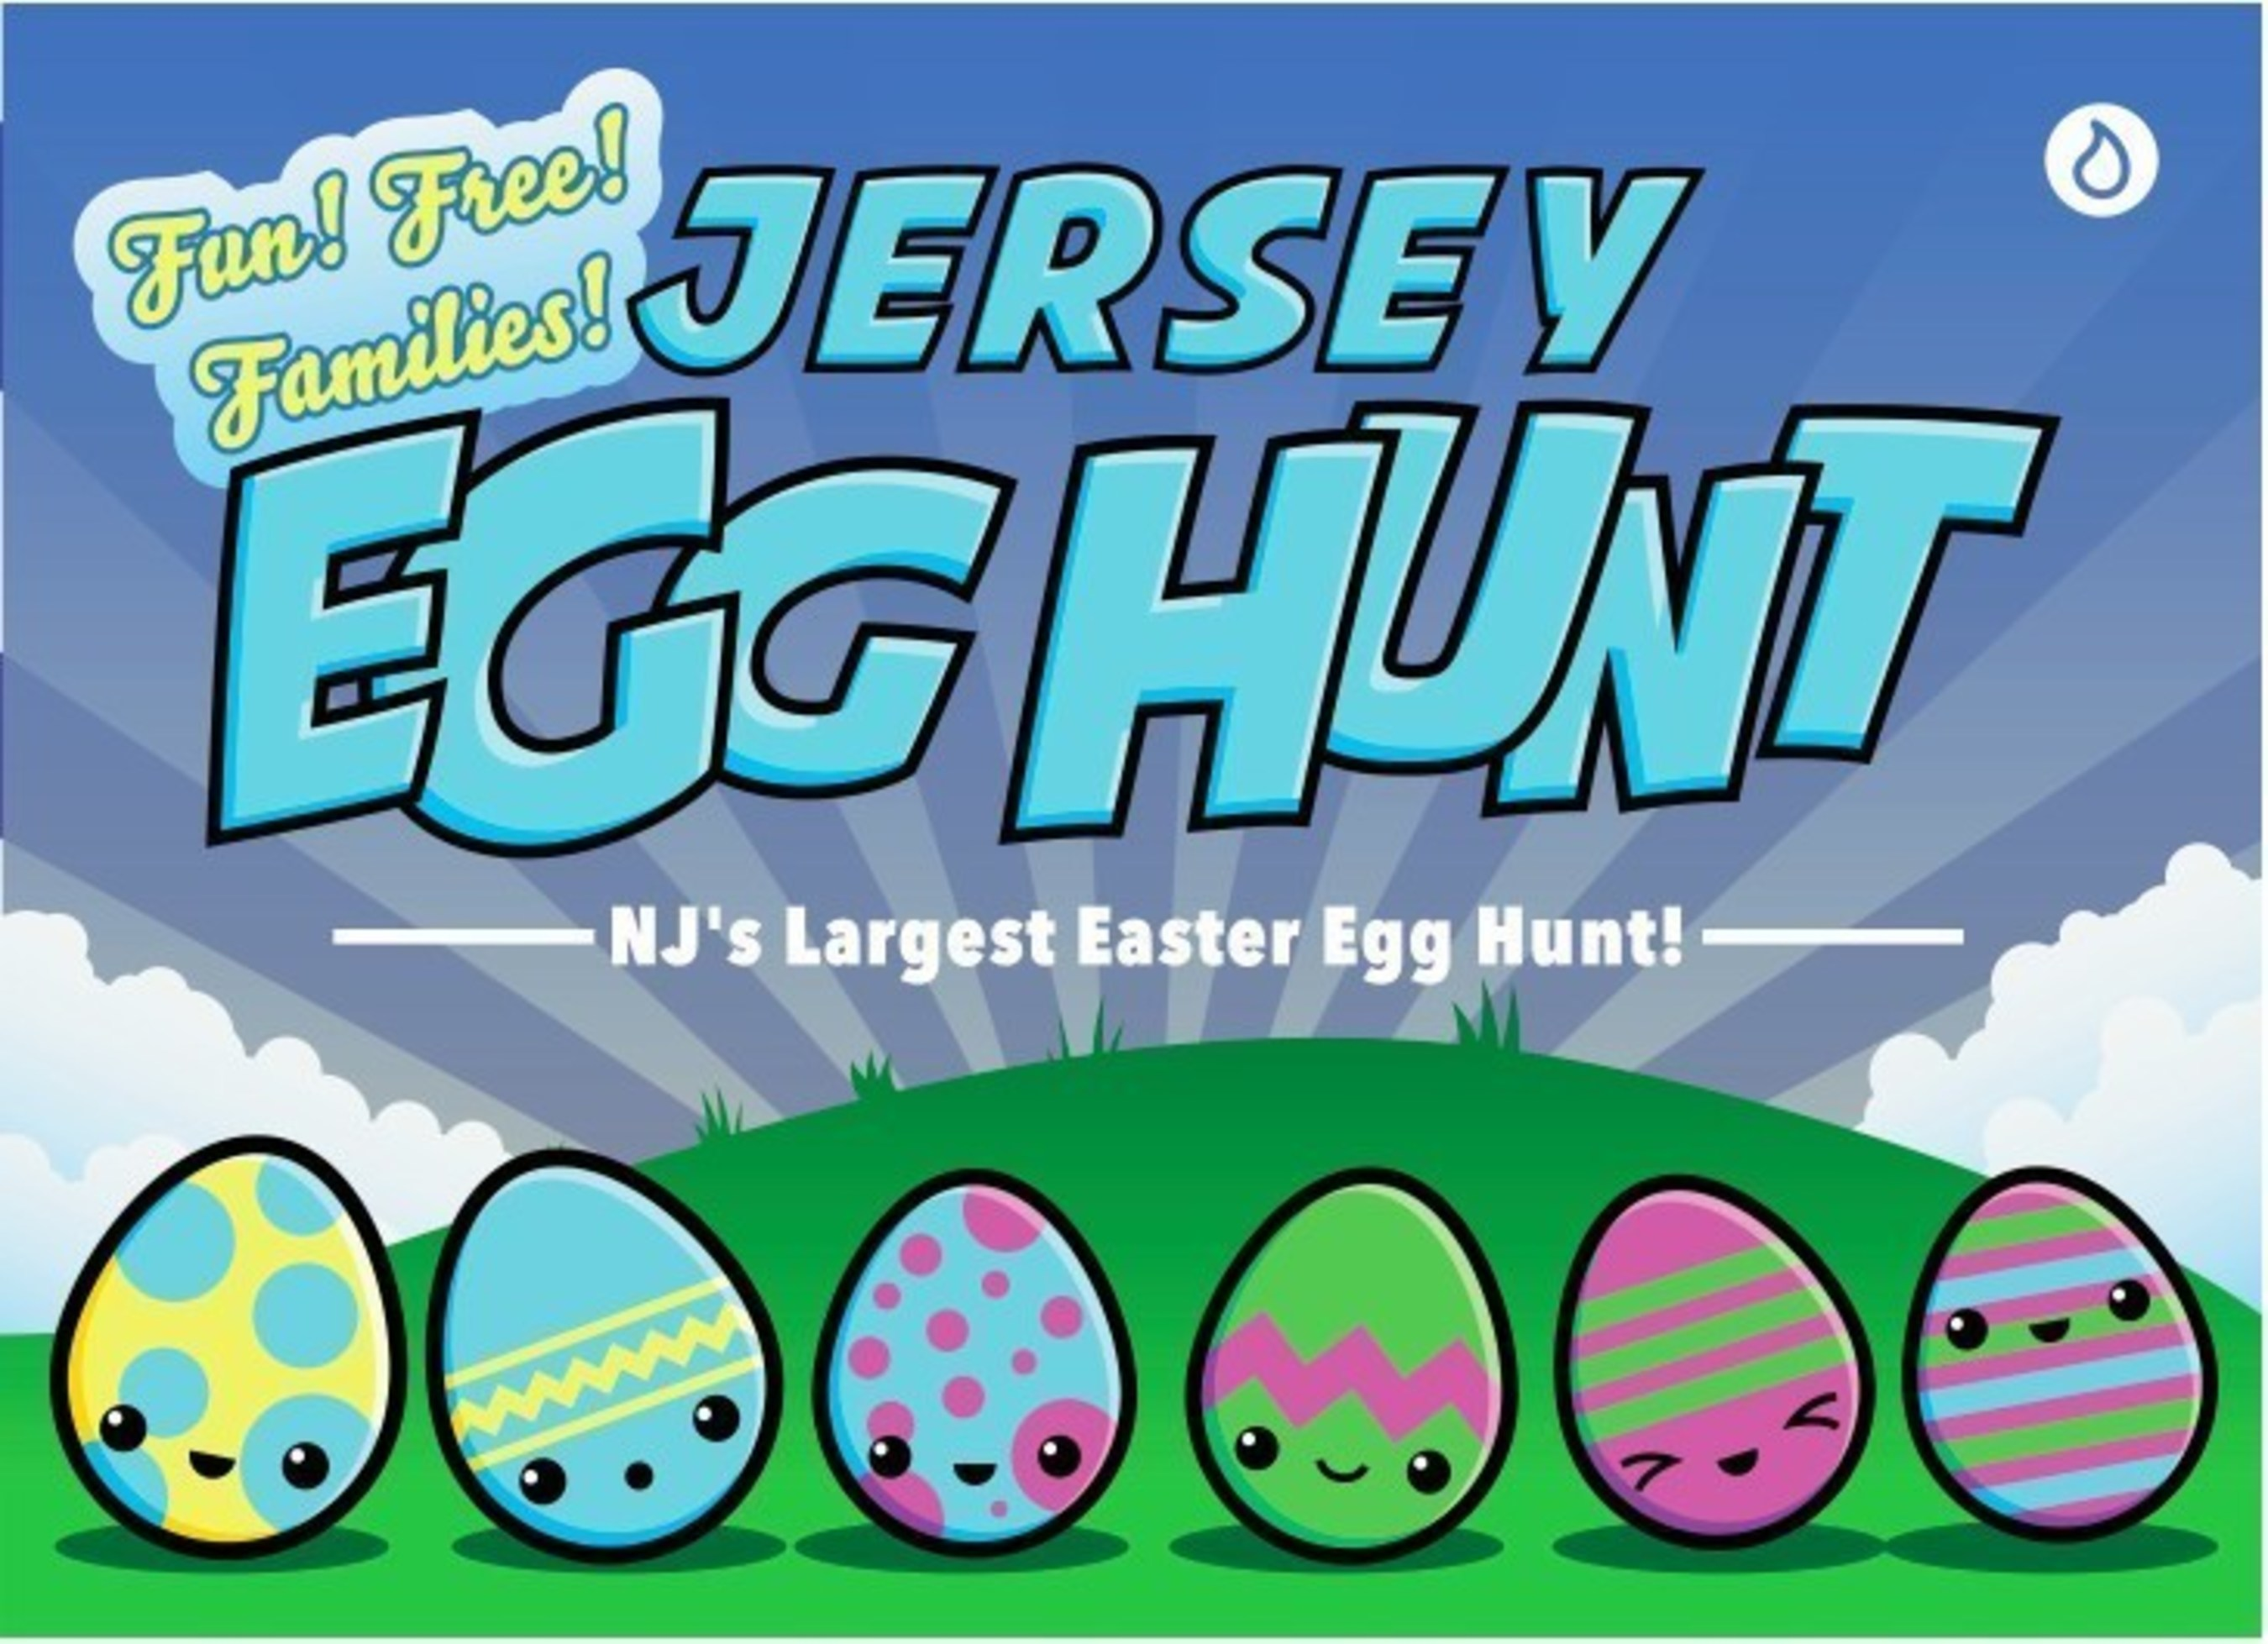 Liquid Church Is Hiding 100,000 Easter Eggs Across New Jersey For State's Largest Egg Hunt Ever